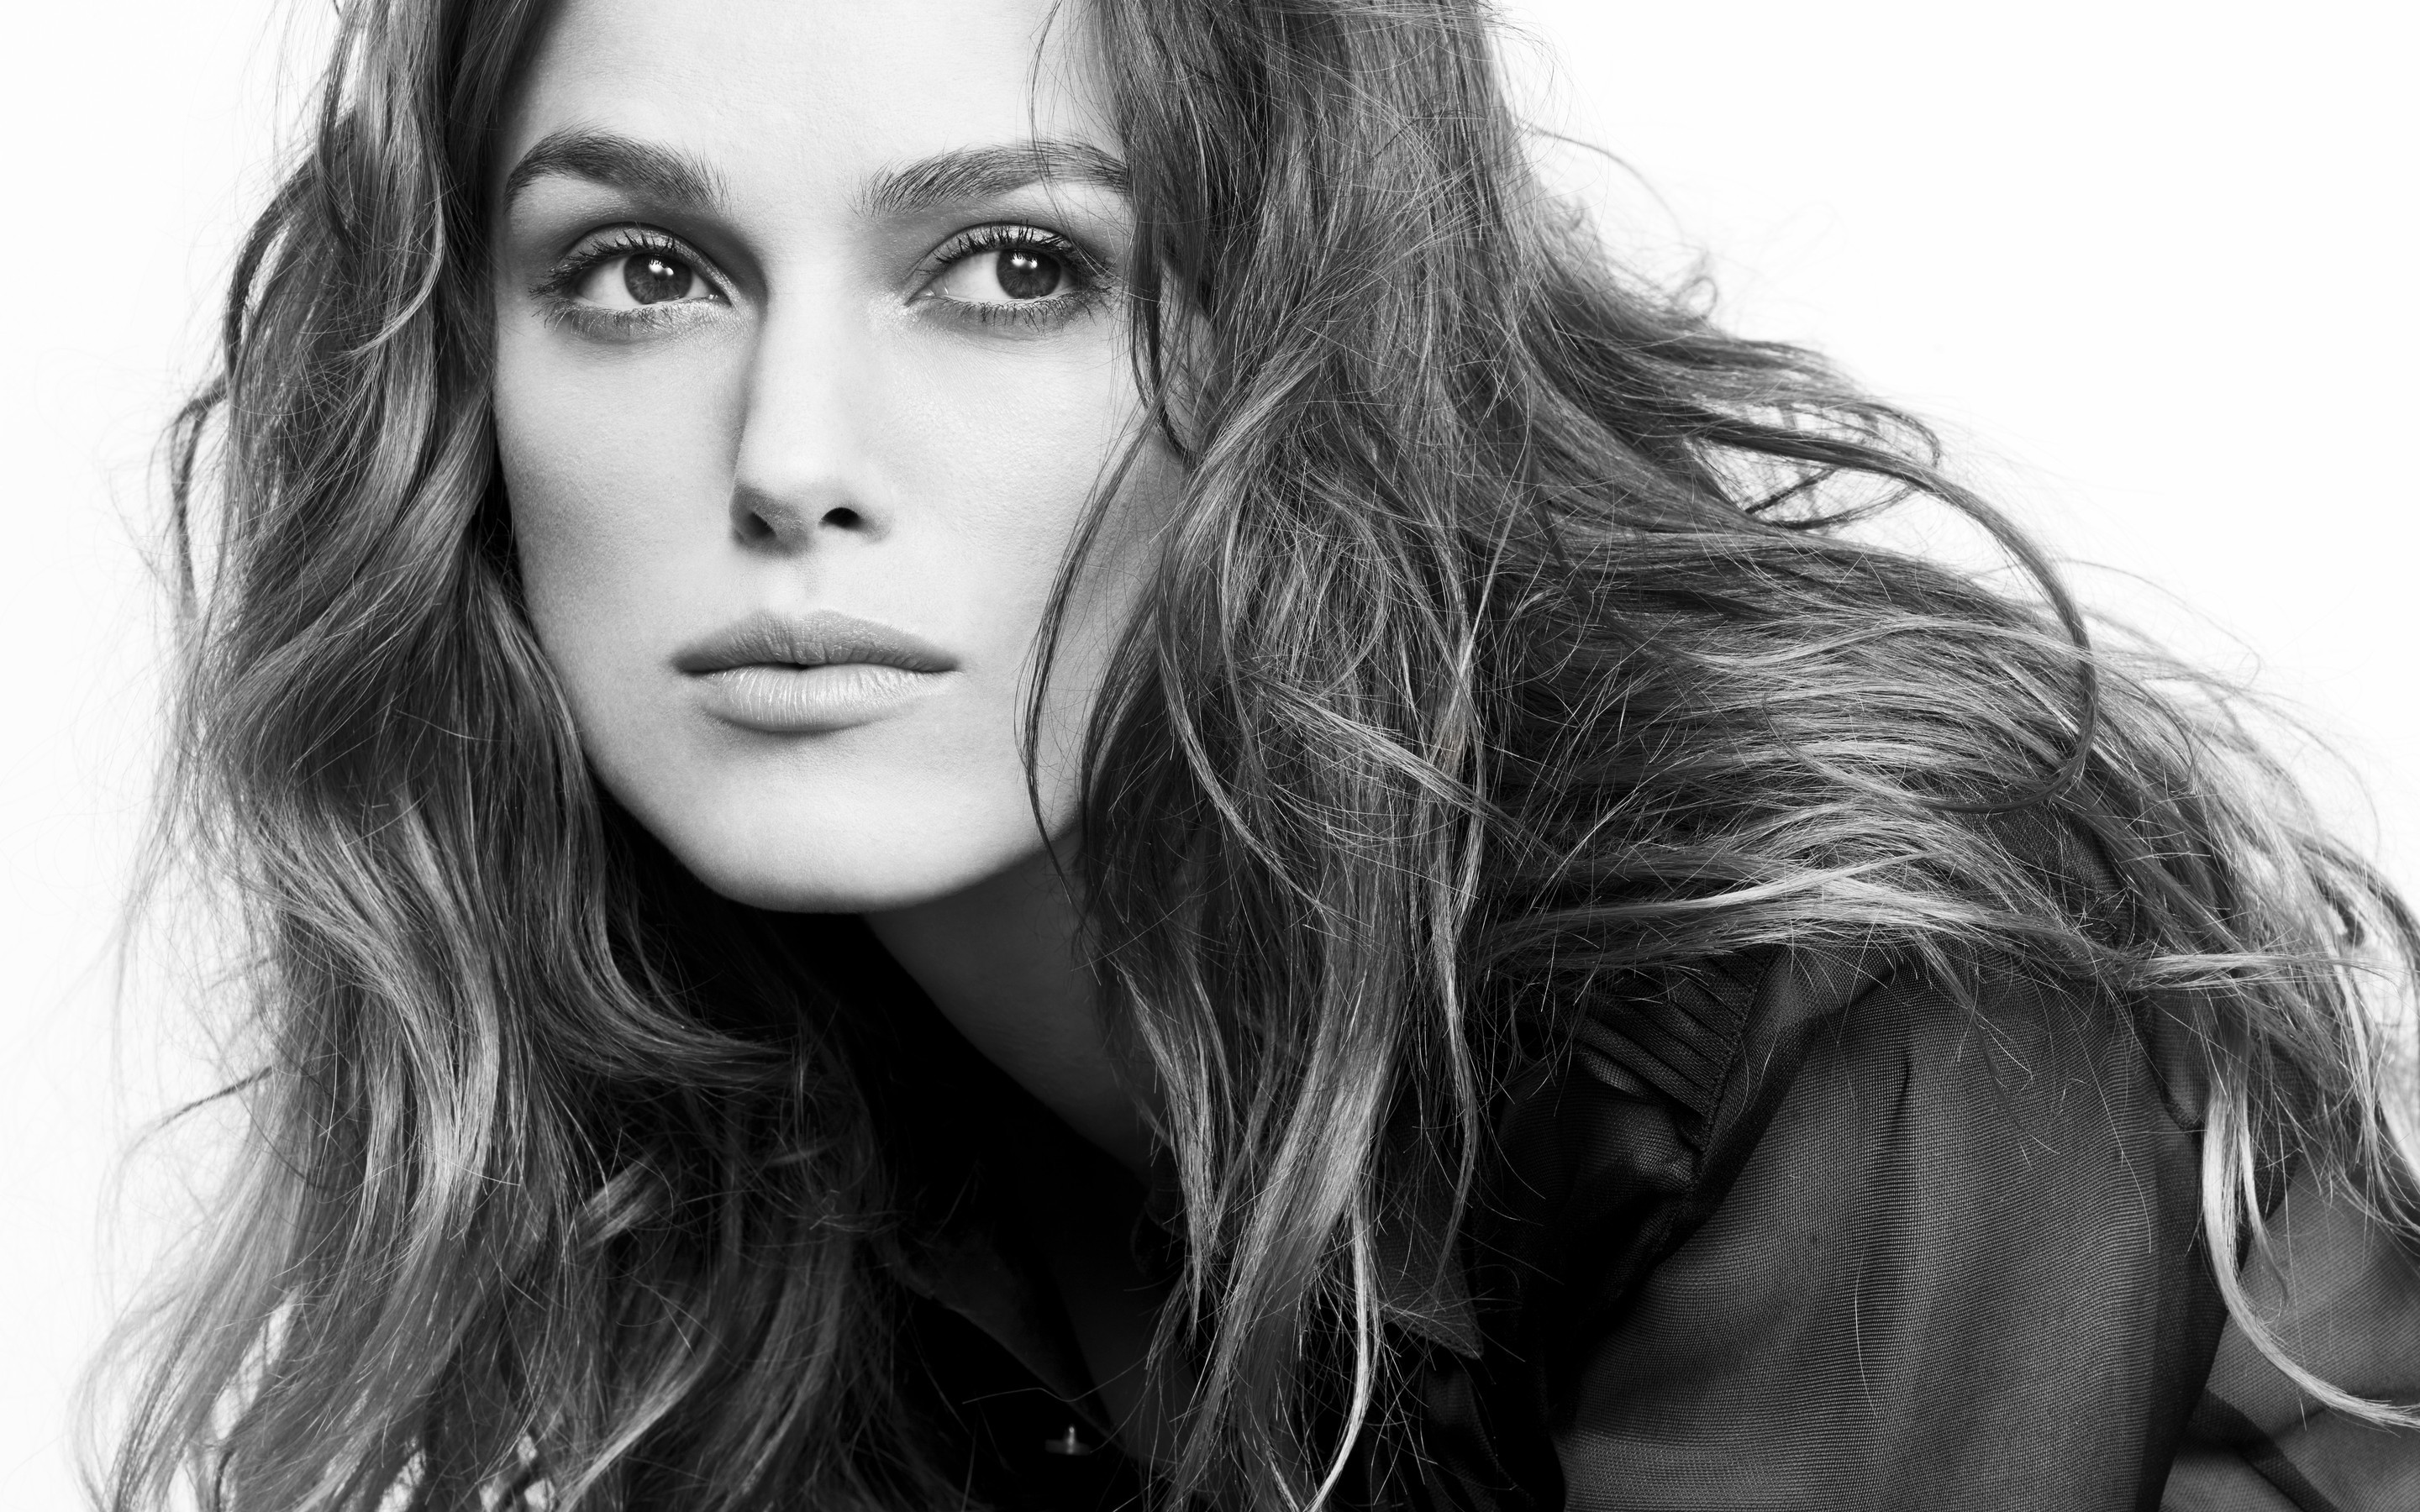 2880x1800 - Keira Knightley Wallpapers 19